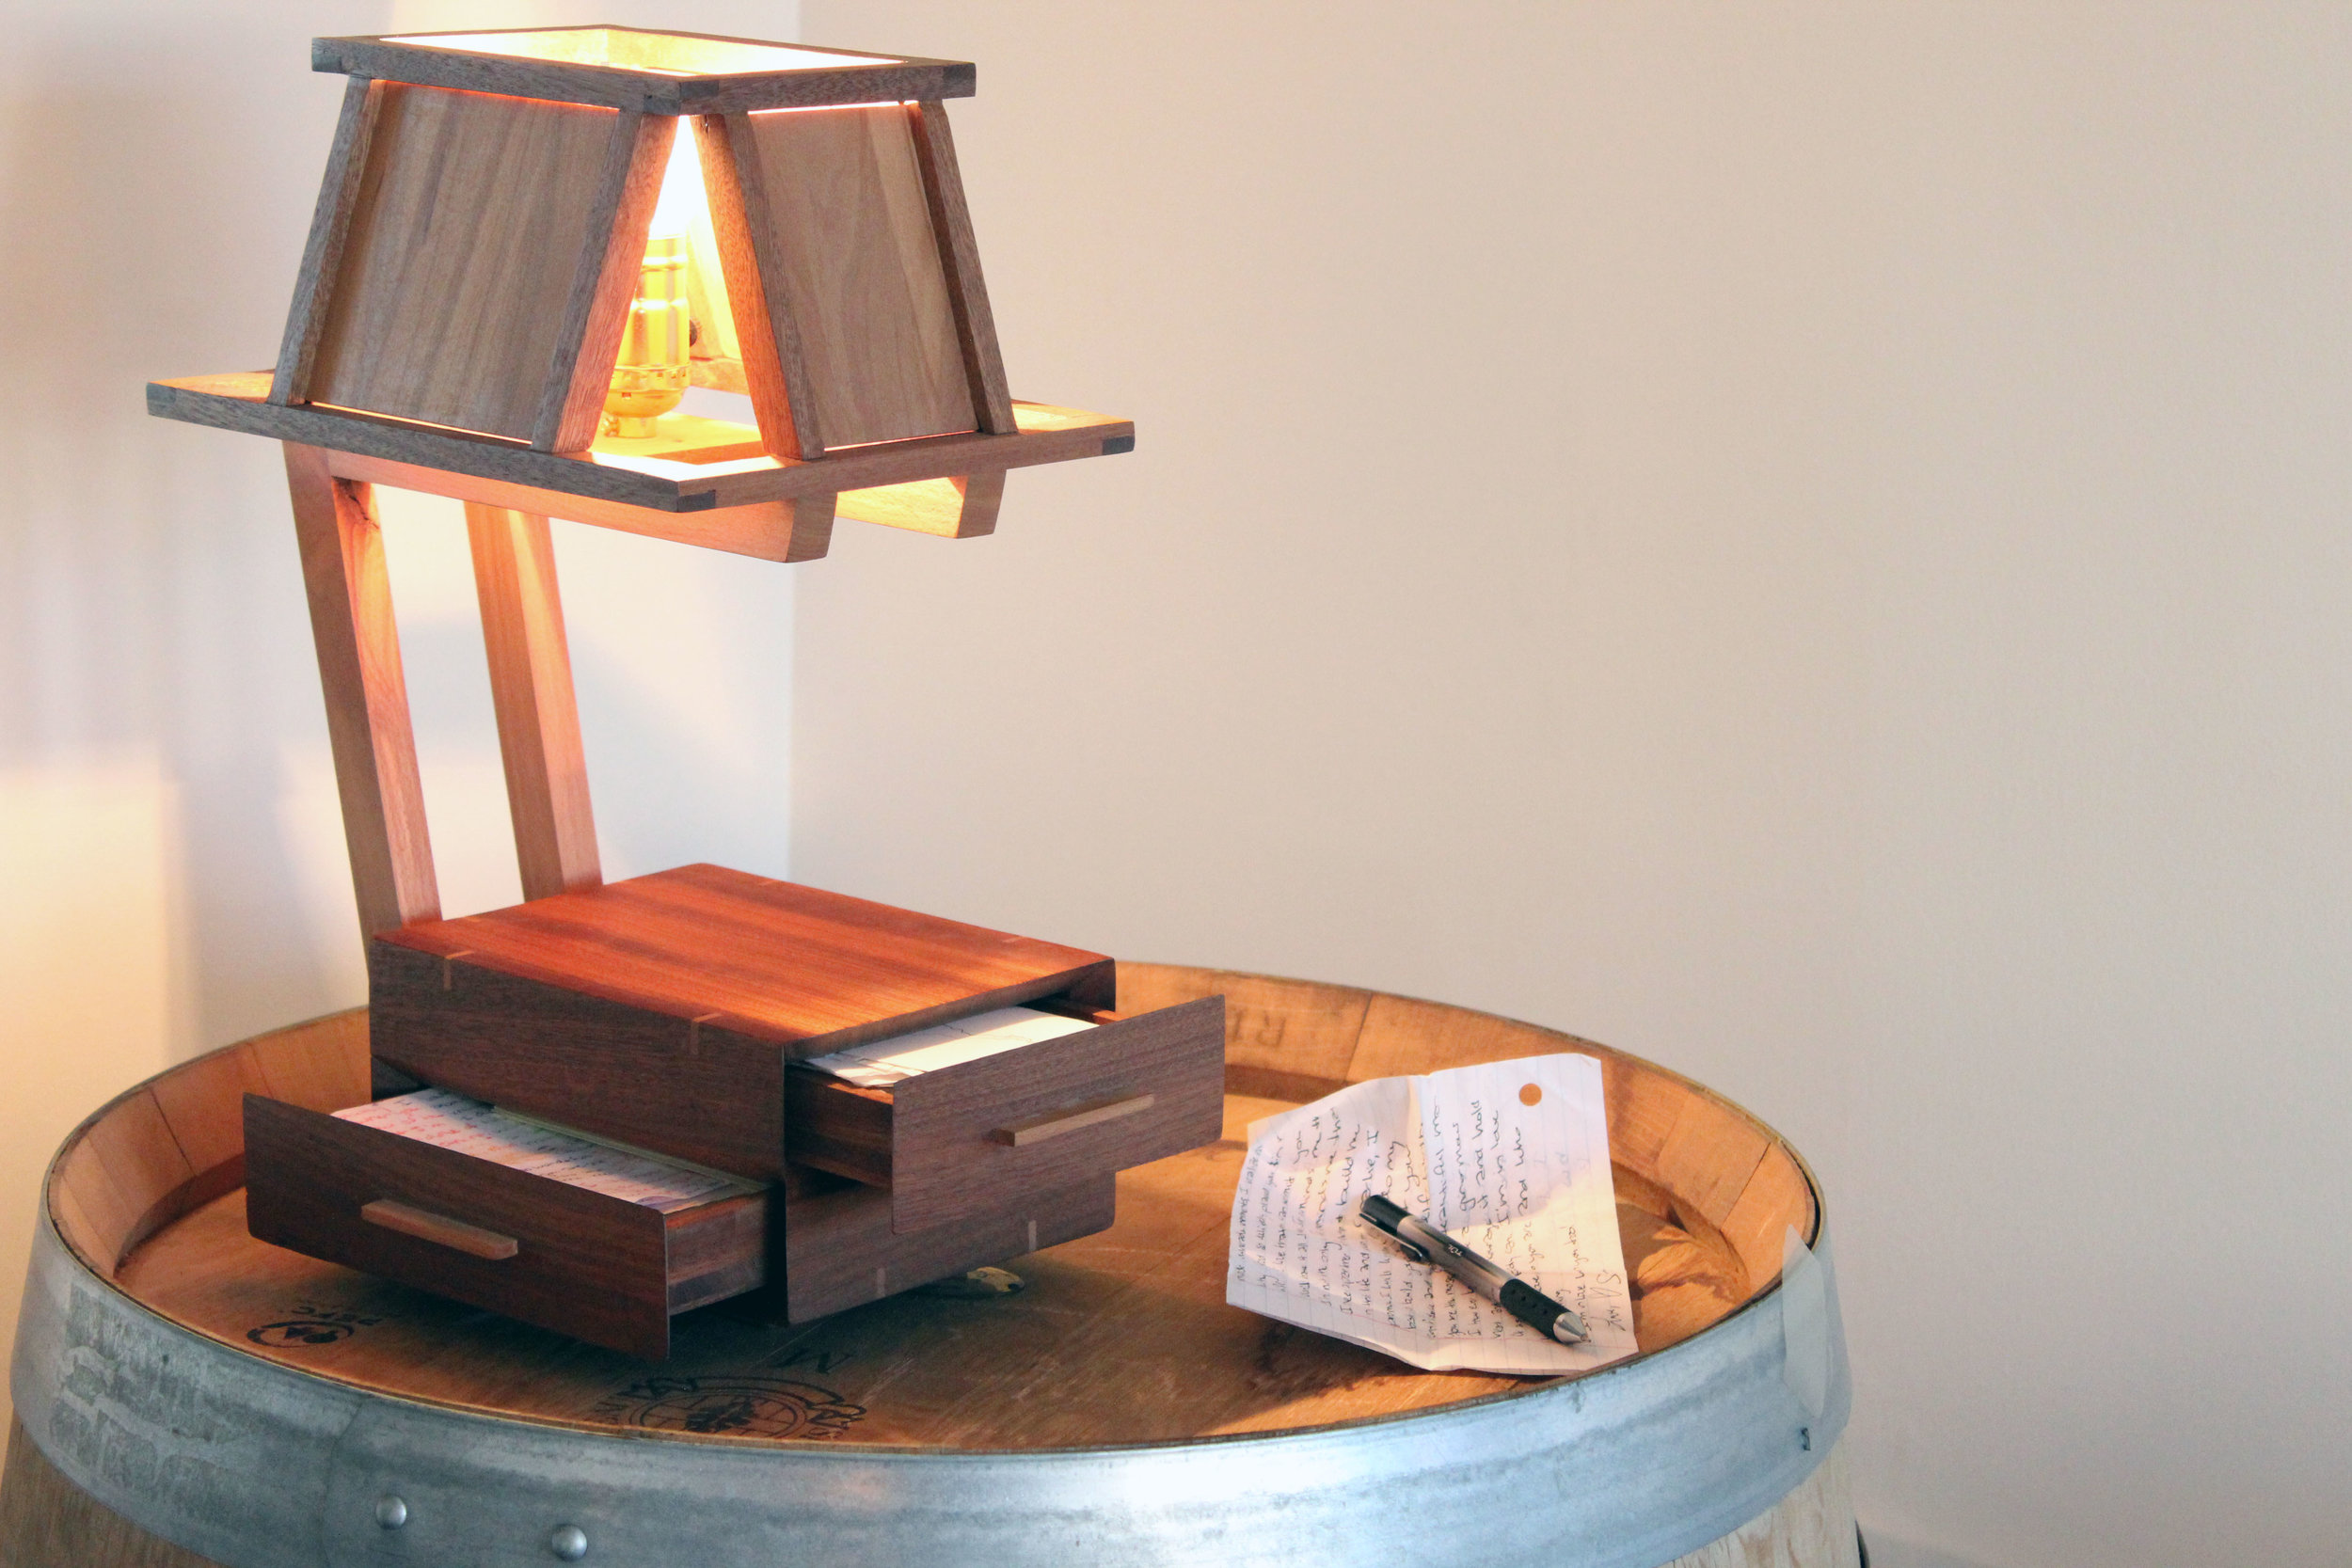 custom wooden lamp with drawers